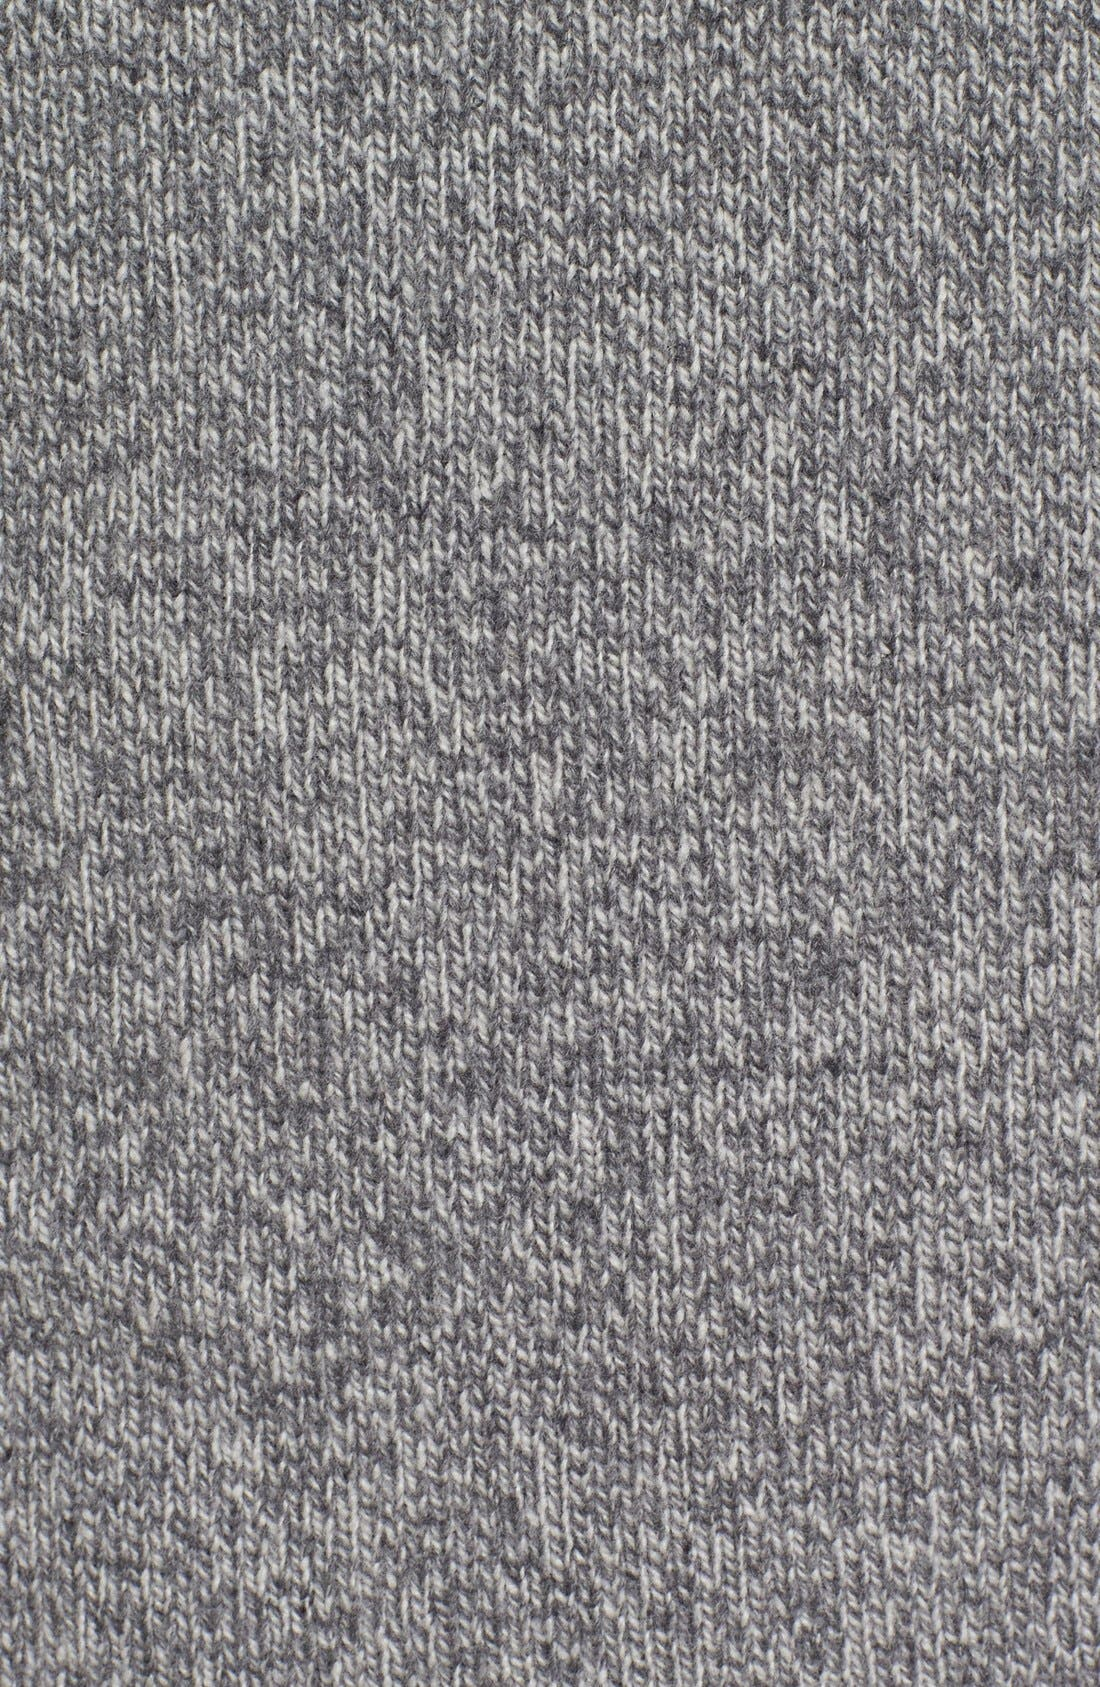 Stredwick Lambswool Sweater,                             Alternate thumbnail 24, color,